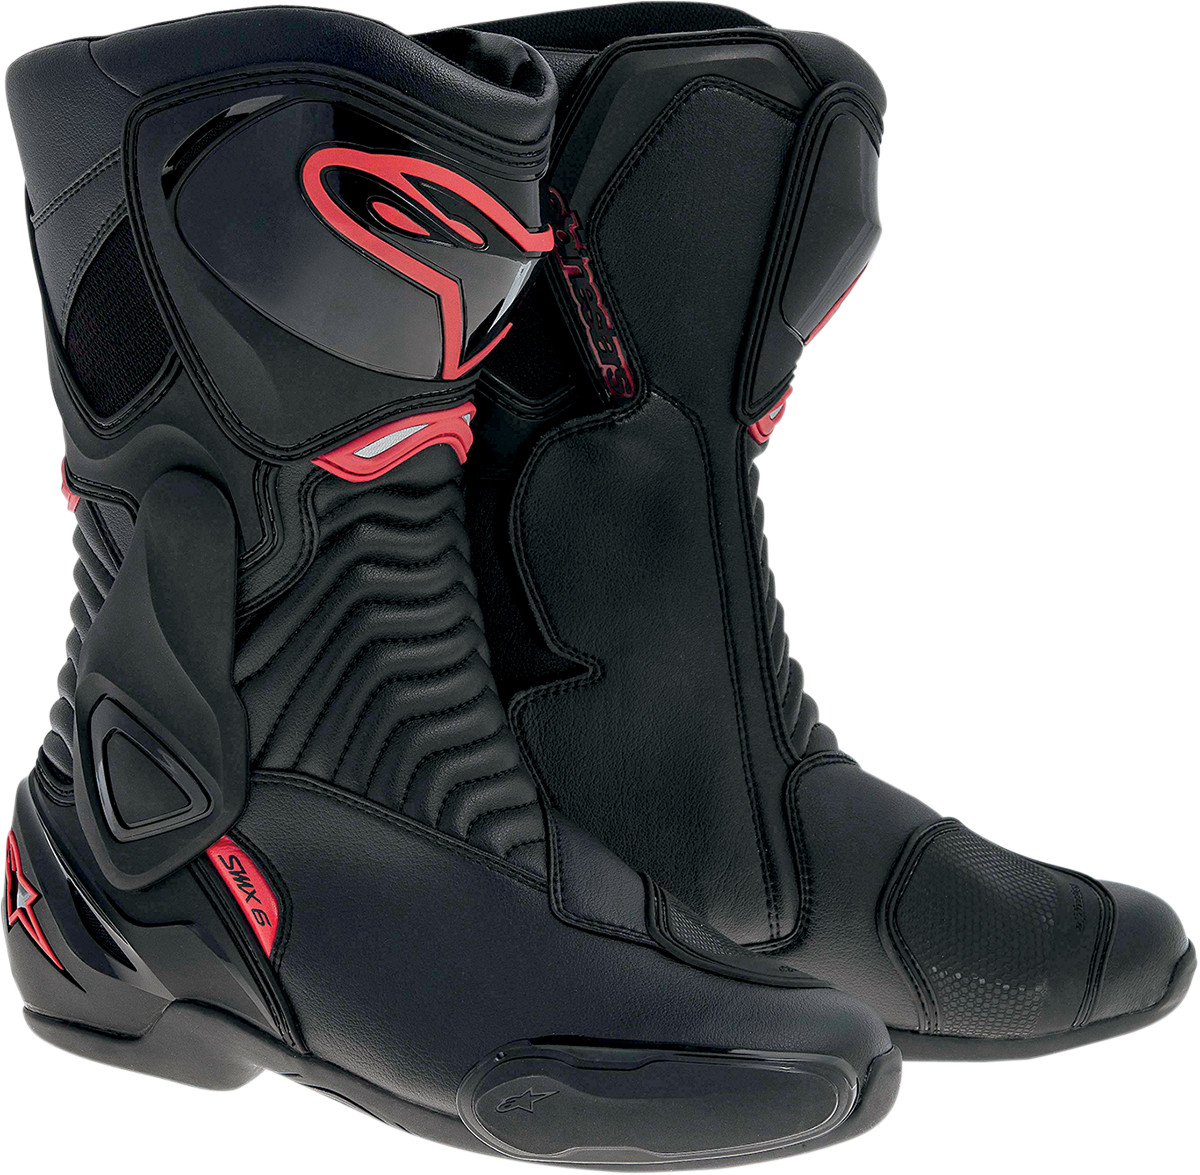 alpinestars s mx 6 street riding motorcycle boots all sizes all colors ebay. Black Bedroom Furniture Sets. Home Design Ideas